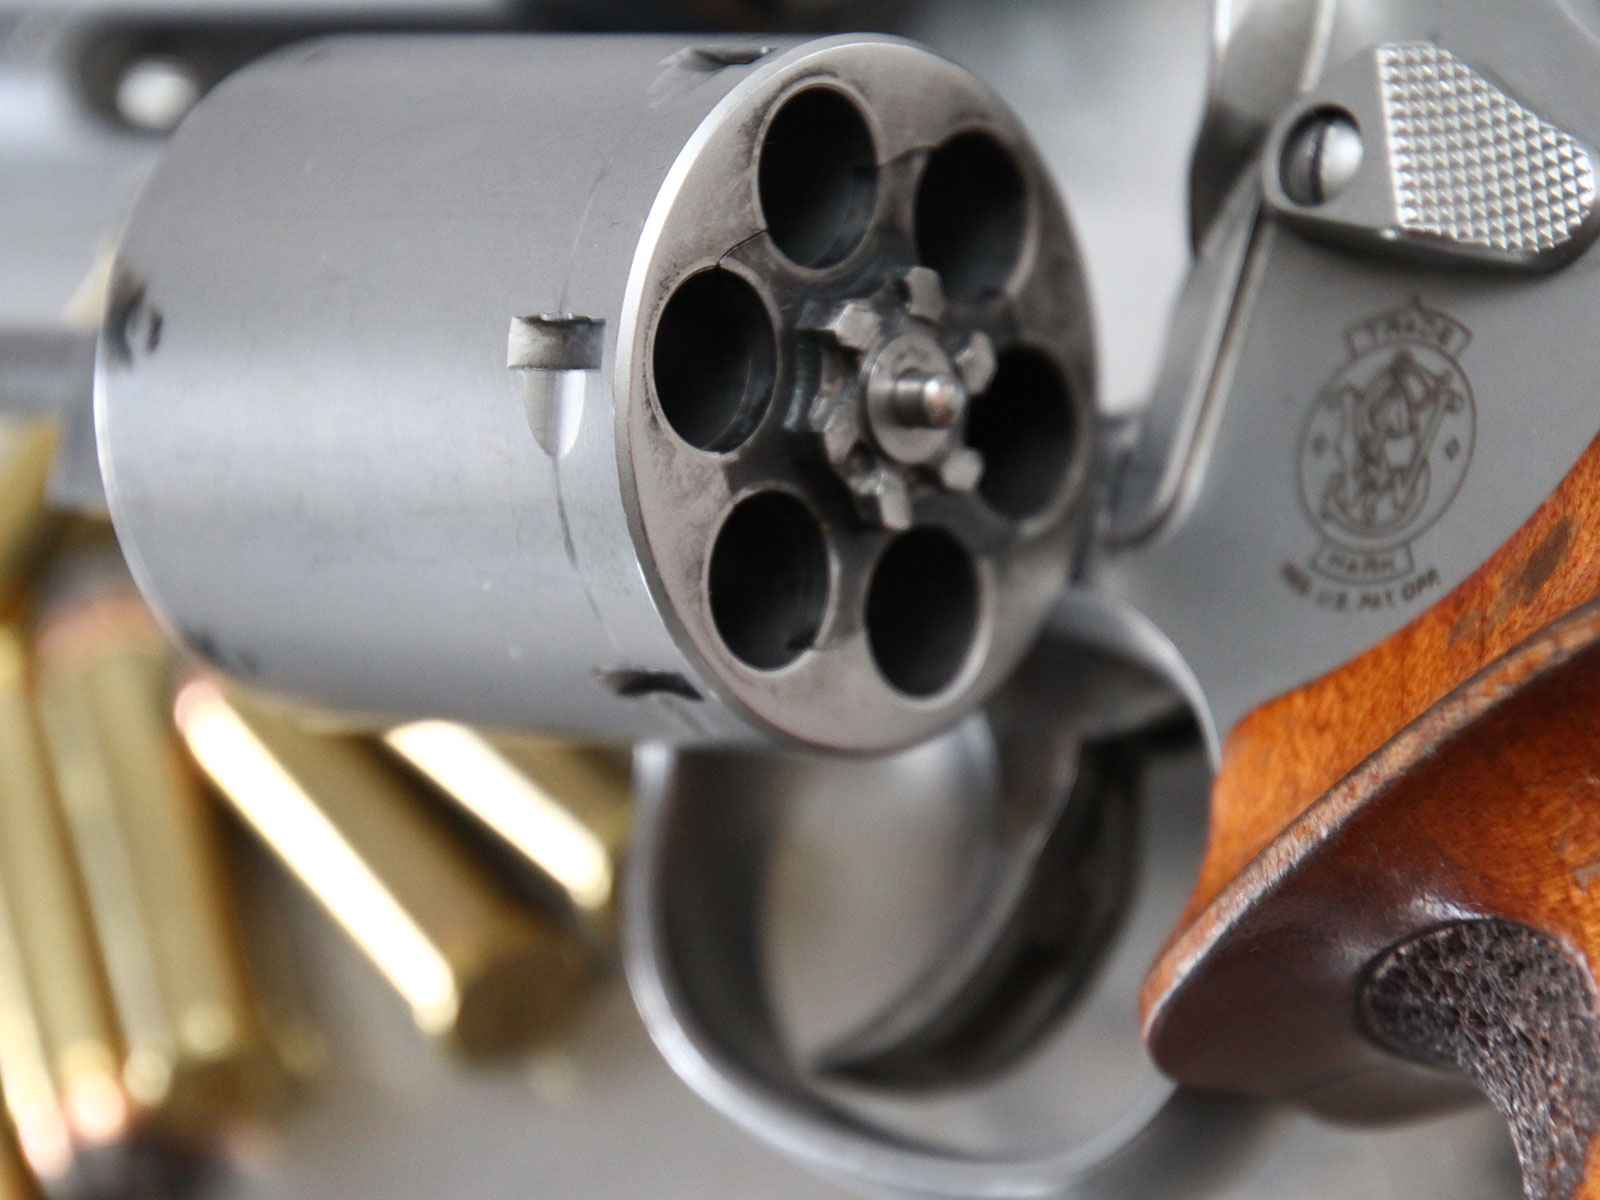 SH_Web_Wir_Waffen_Smith-Wesson-357-Magnum-3_1800x1200